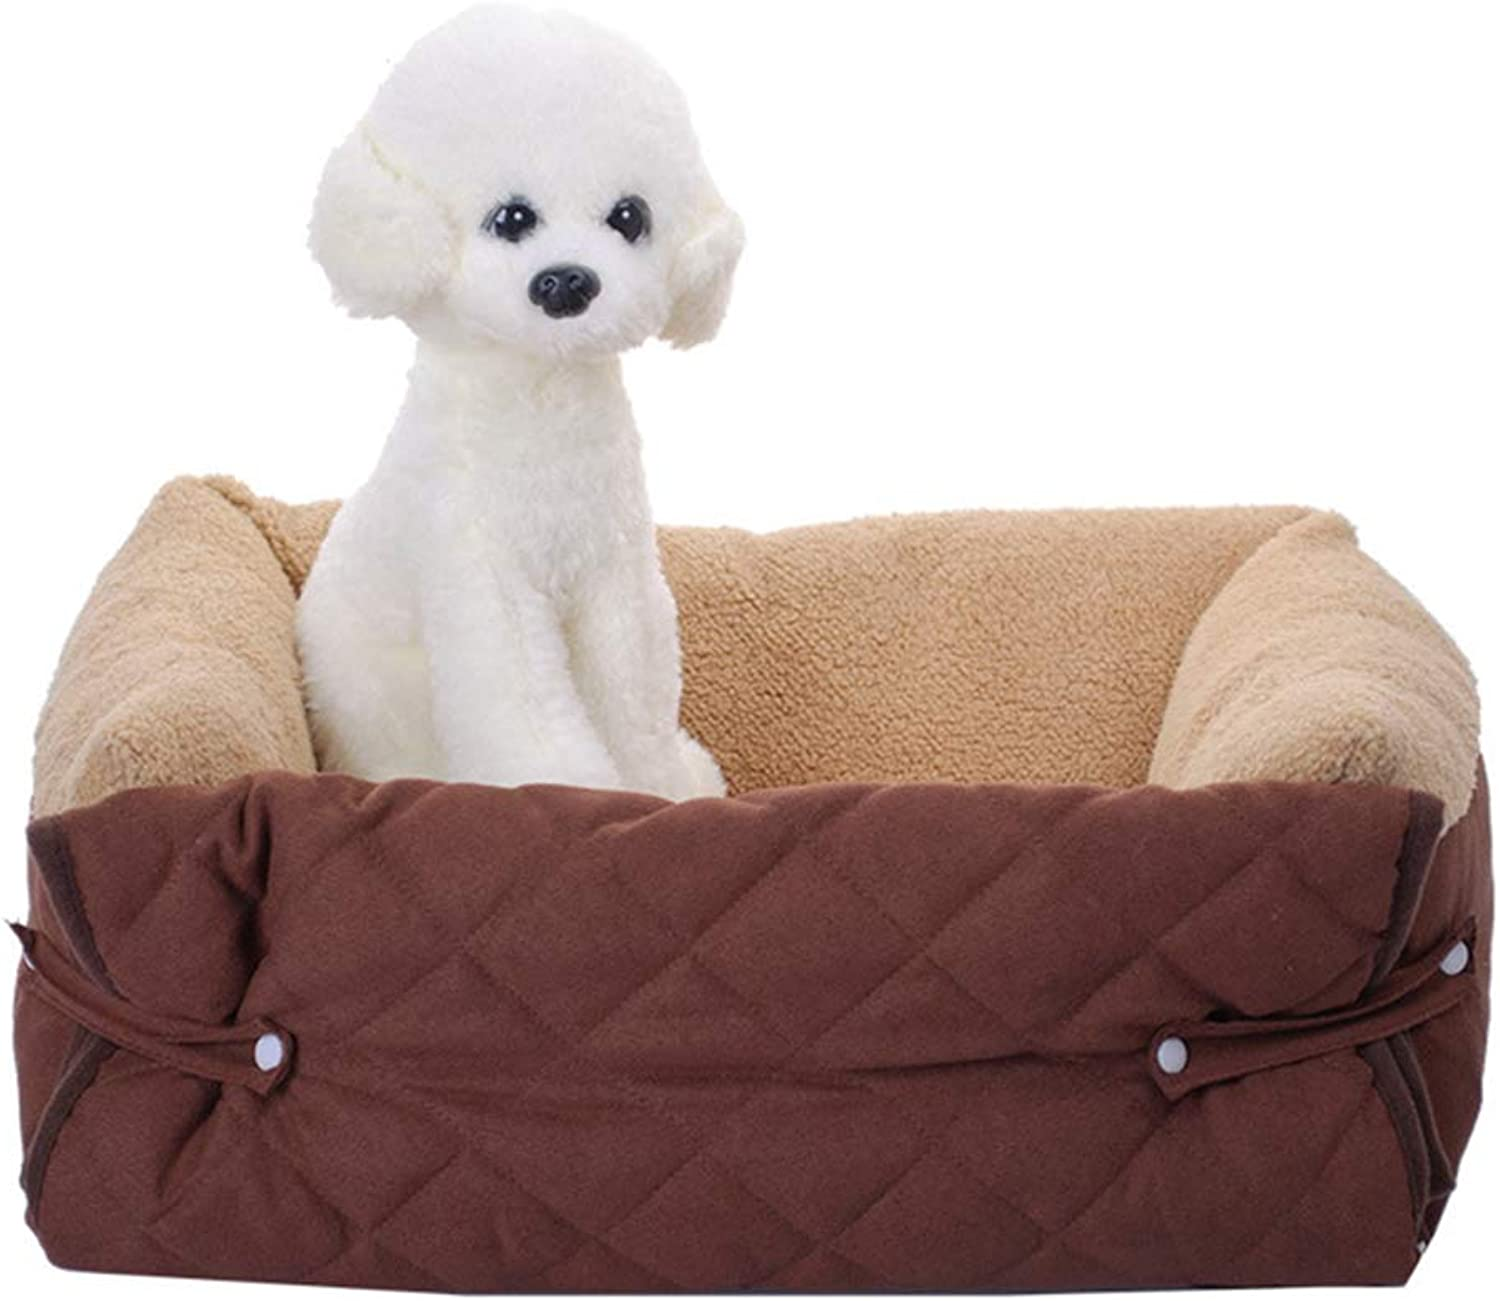 Dog Bed Premium Orthopedic Memory Foam Dogs Cover pet den pet Sofa mat cat Mattress Cover Small and Medium Sized Warm